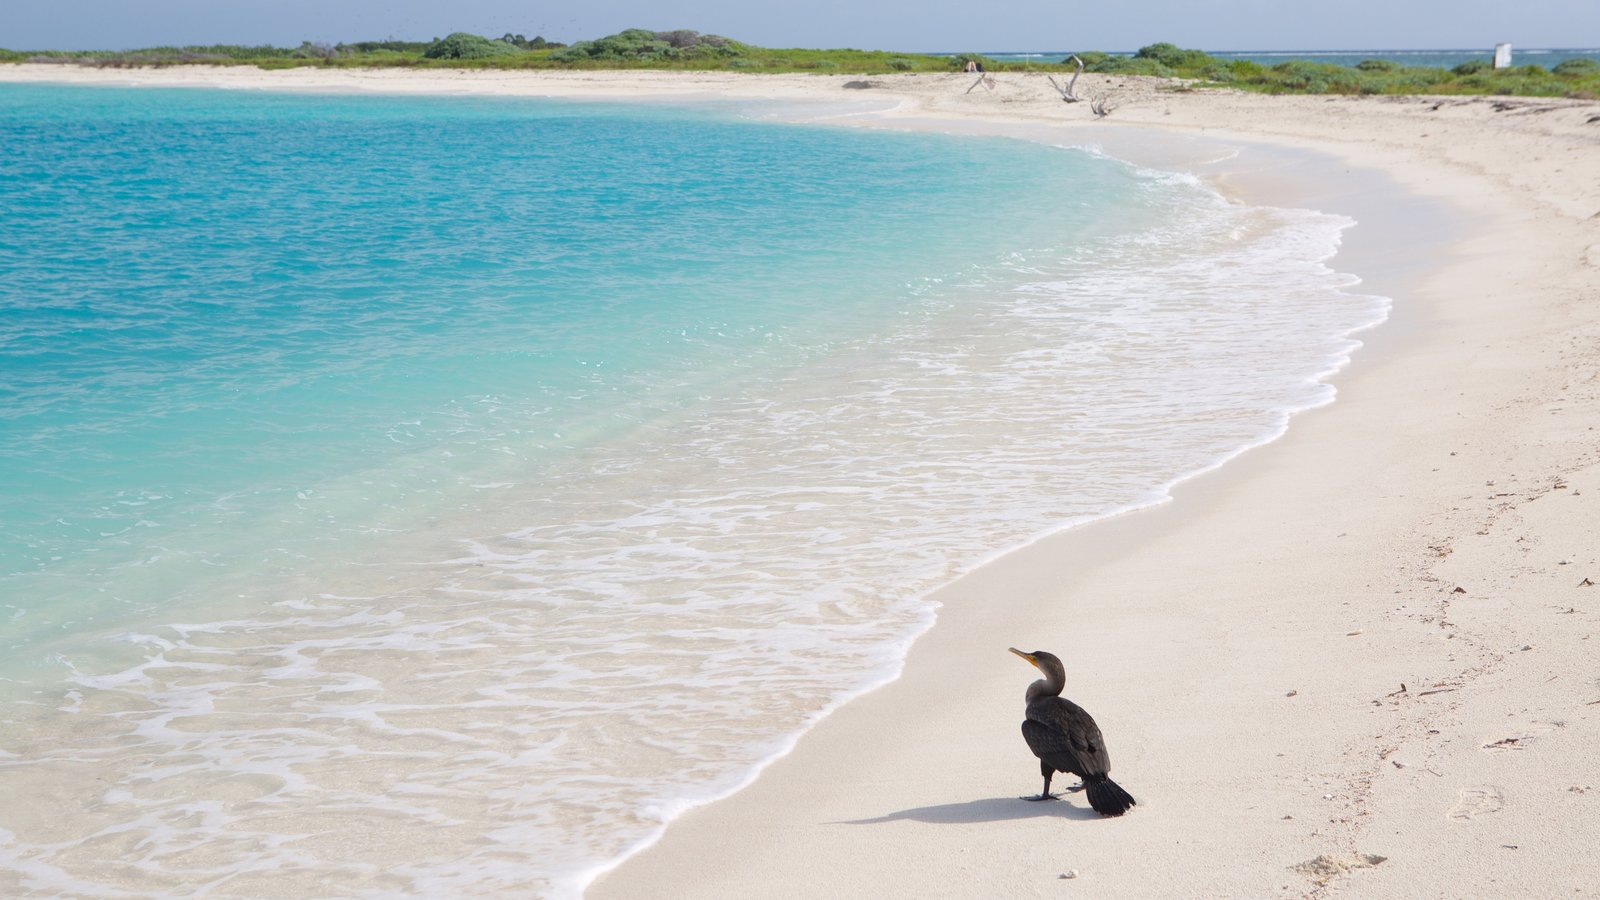 Dry Tortugas National Park Featuring Bird Life A Beach And General Coastal Views